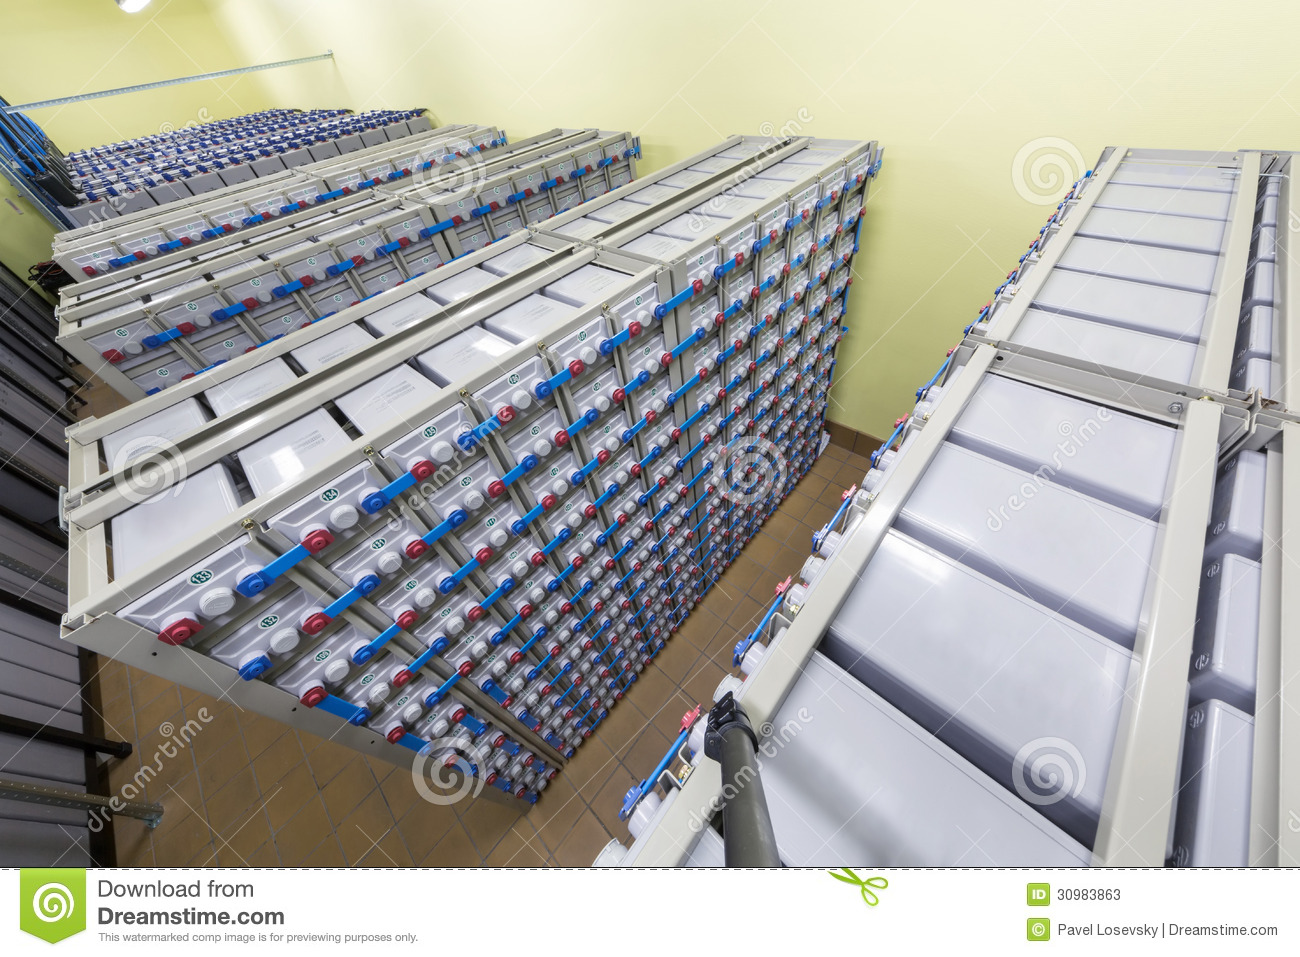 Batteries in industrial backup power system.